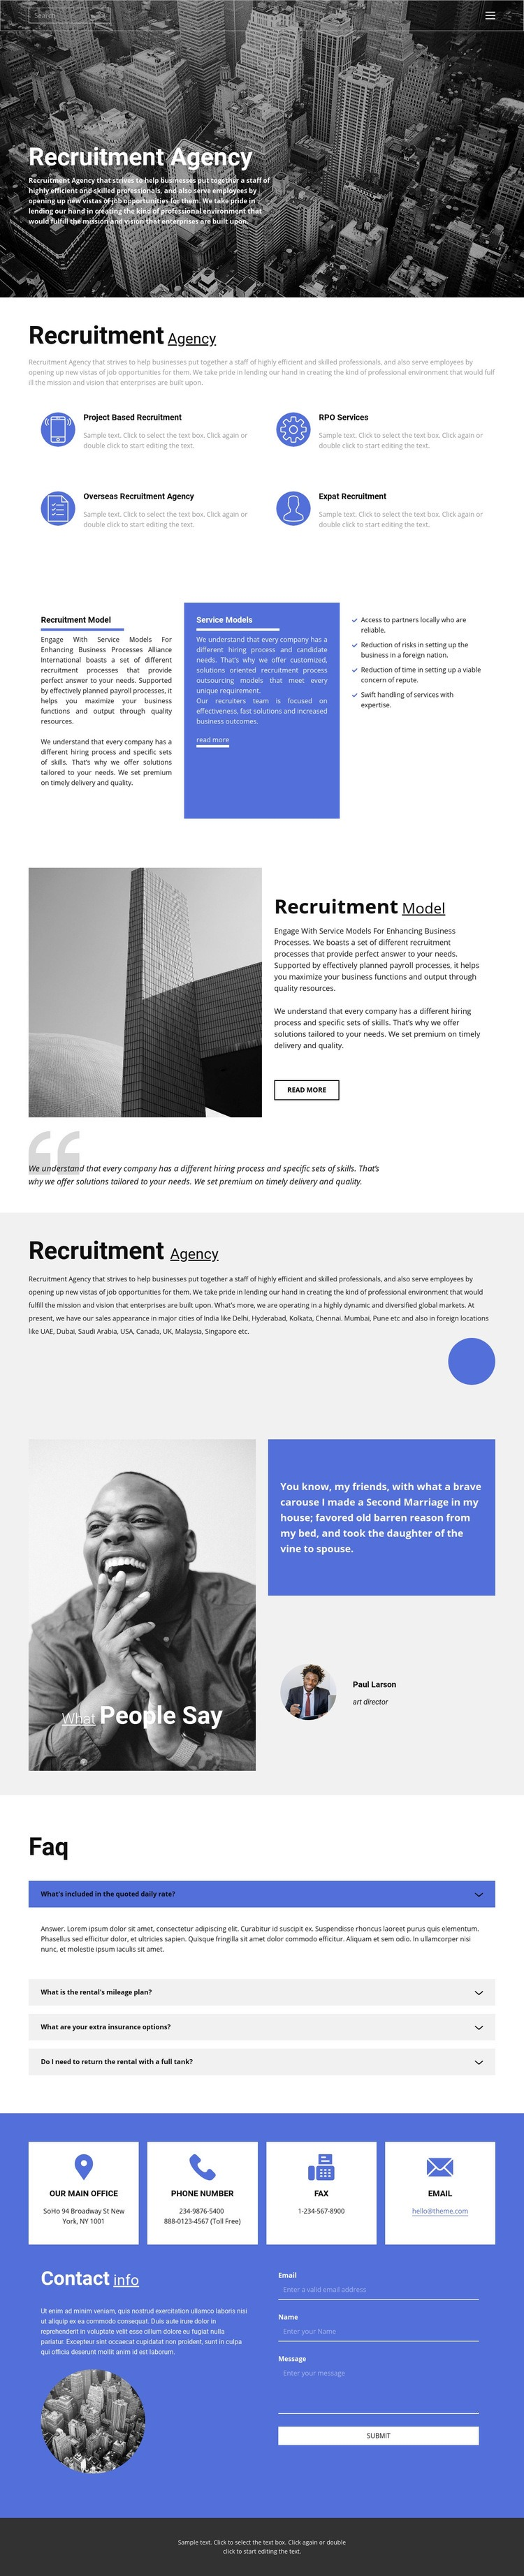 Recruiting agency with good experience Web Page Designer